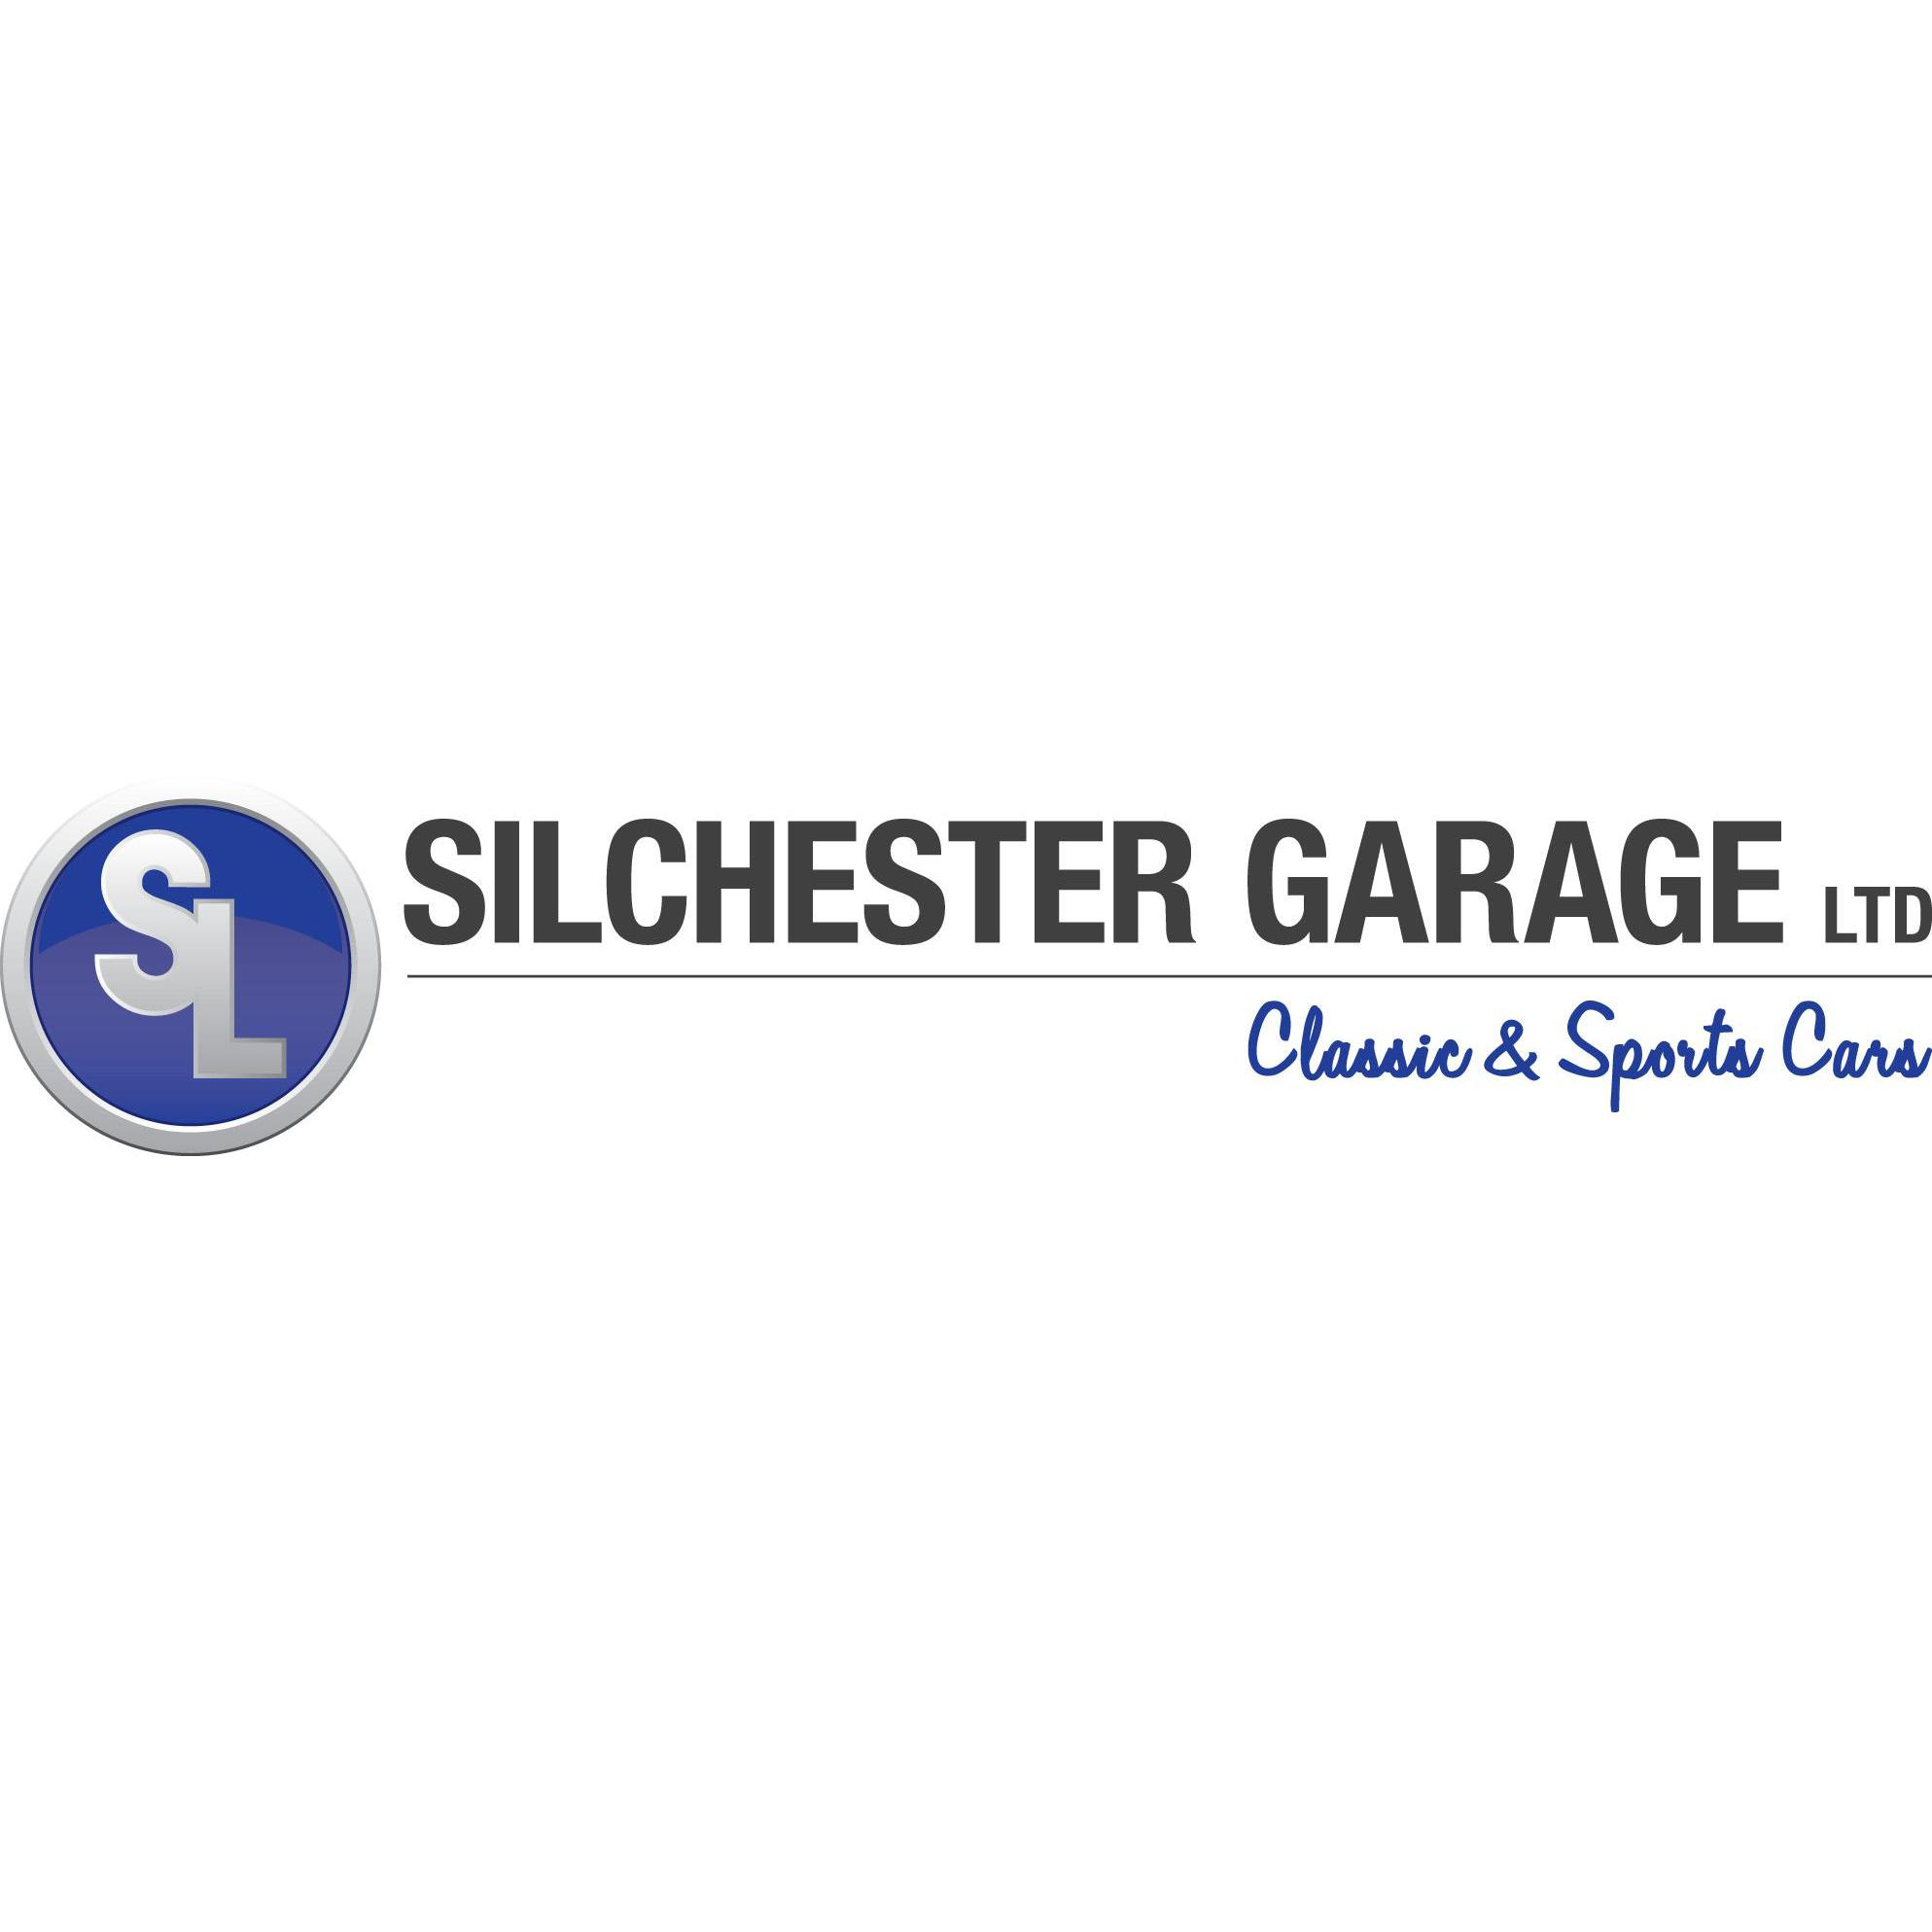 Silchester Garage - Reading, Hampshire RG7 2NX - 01189 701648 | ShowMeLocal.com